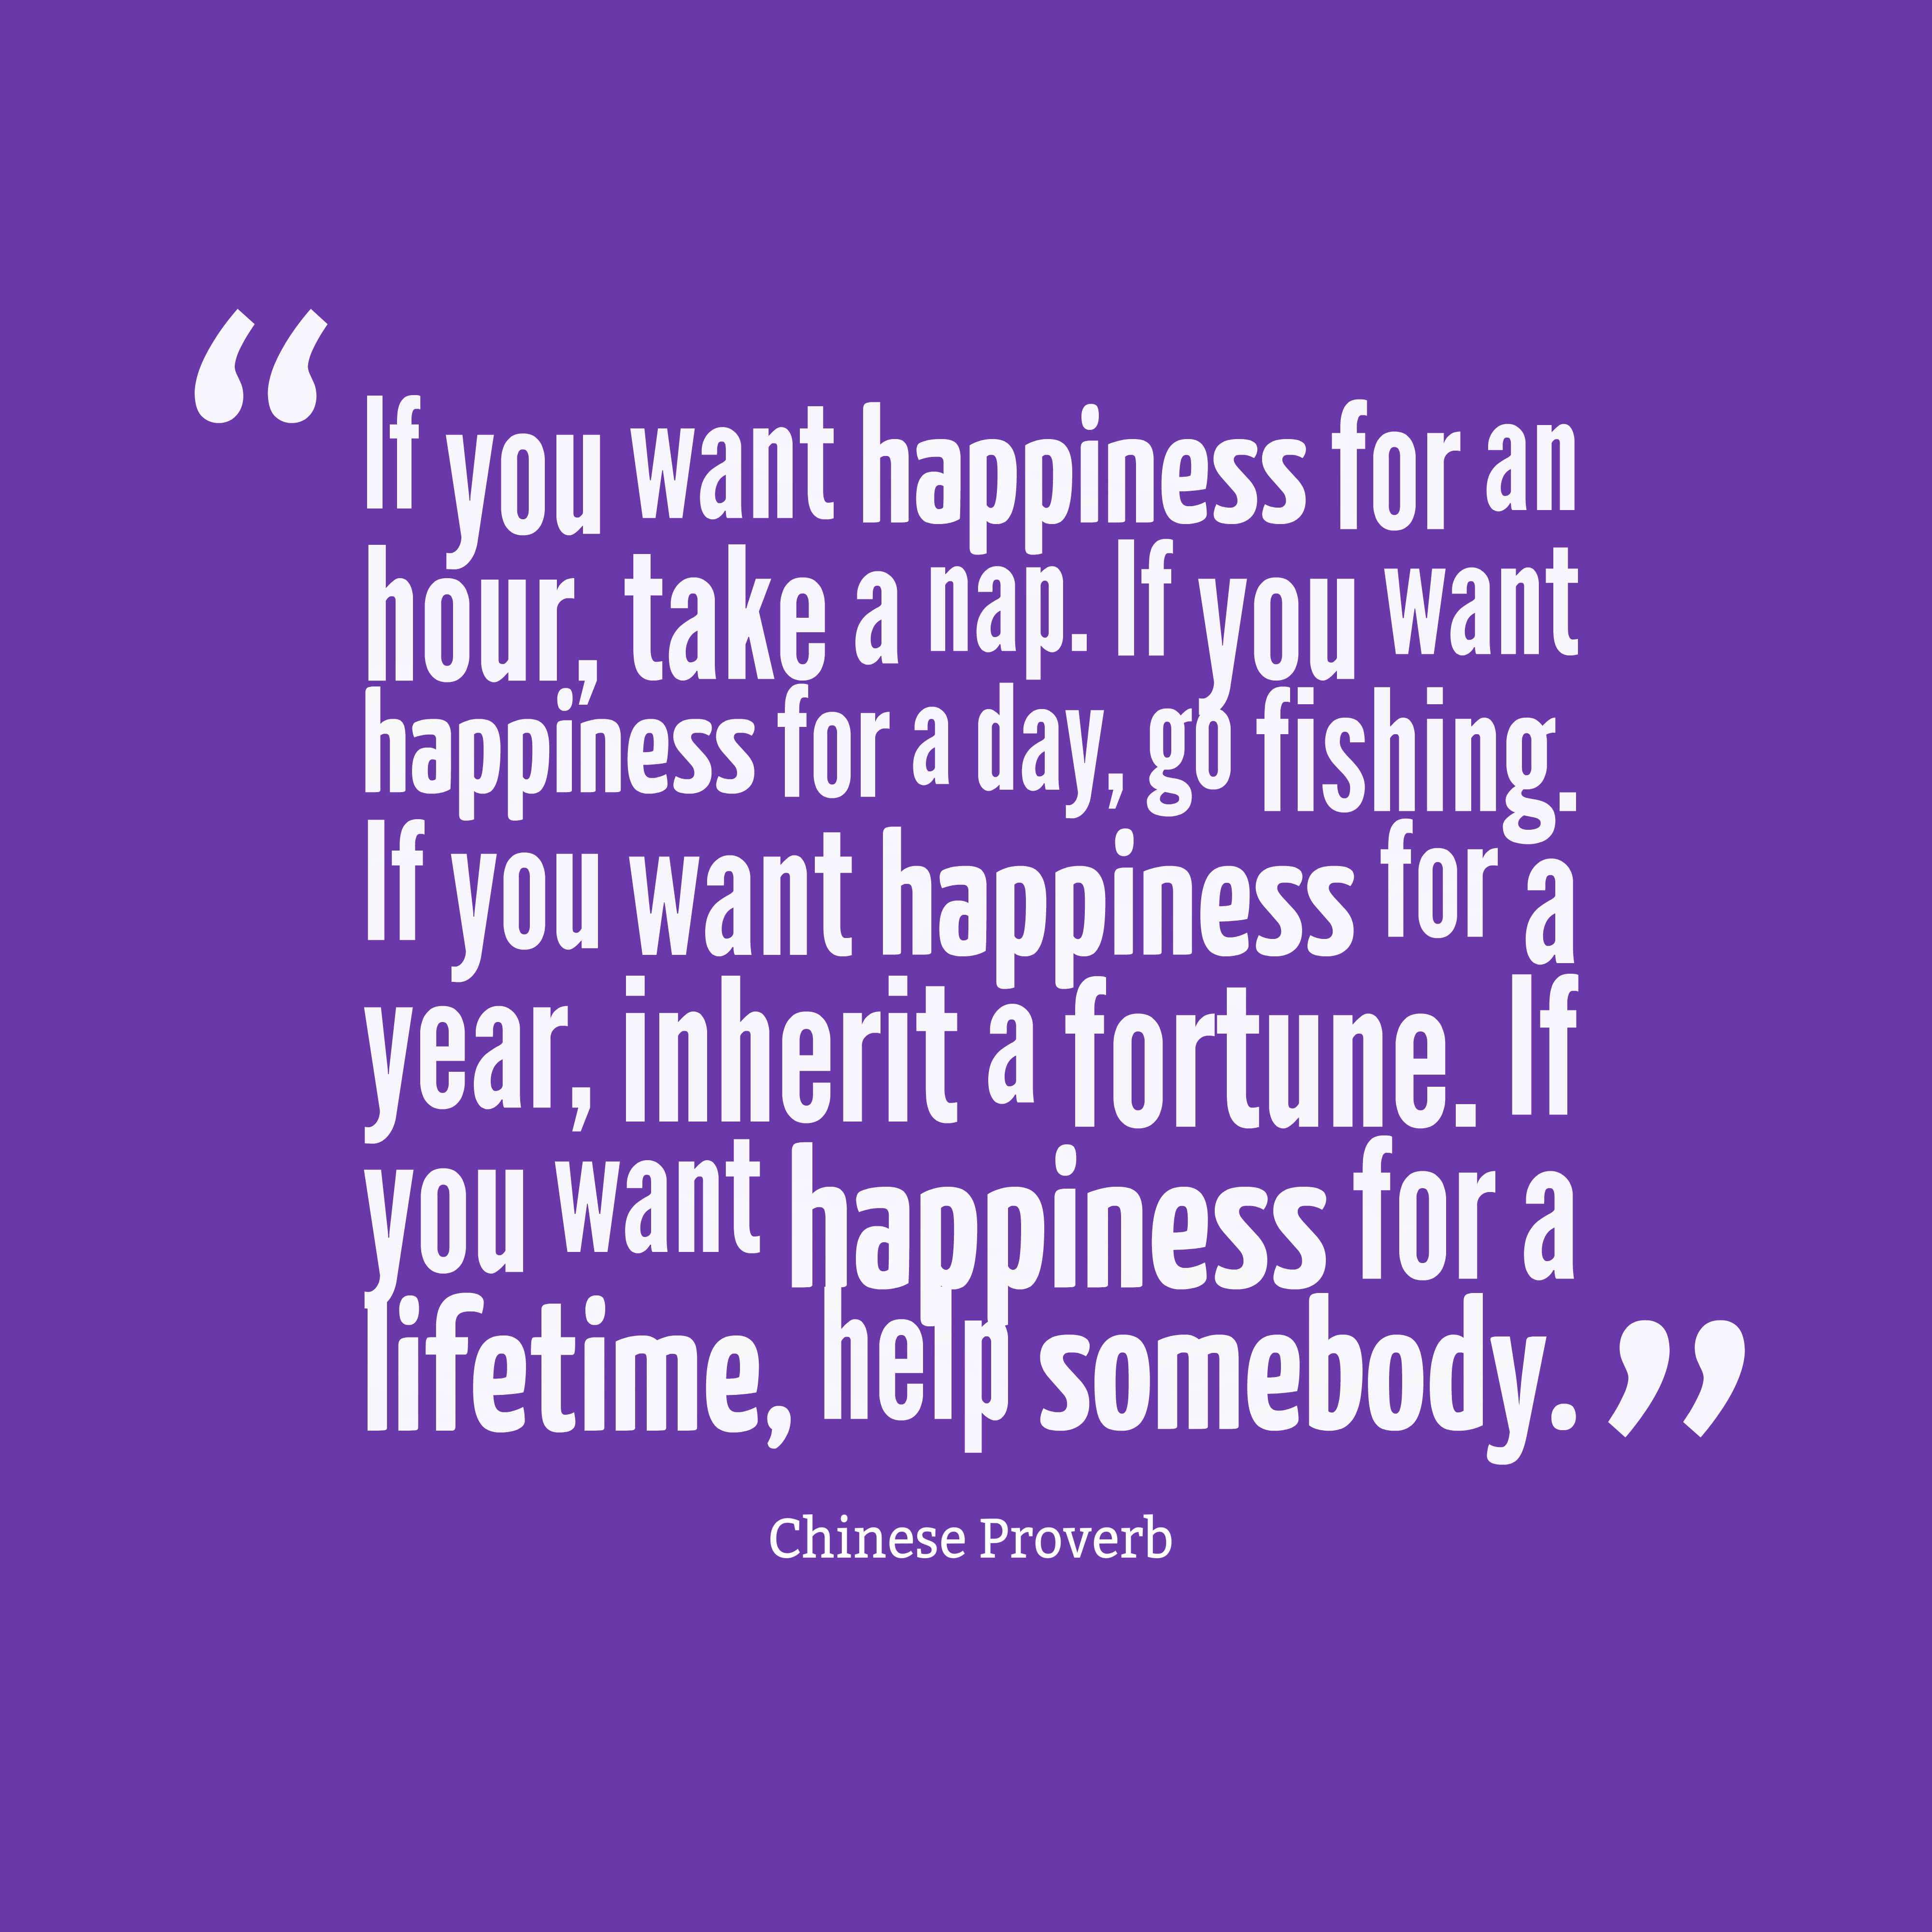 Quotes image of If you want happiness for an hour, take a nap. If you want happiness for a day, go fishing. If you want happiness for a year, inherit a fortune. If you want happiness for a lifetime, help somebody.